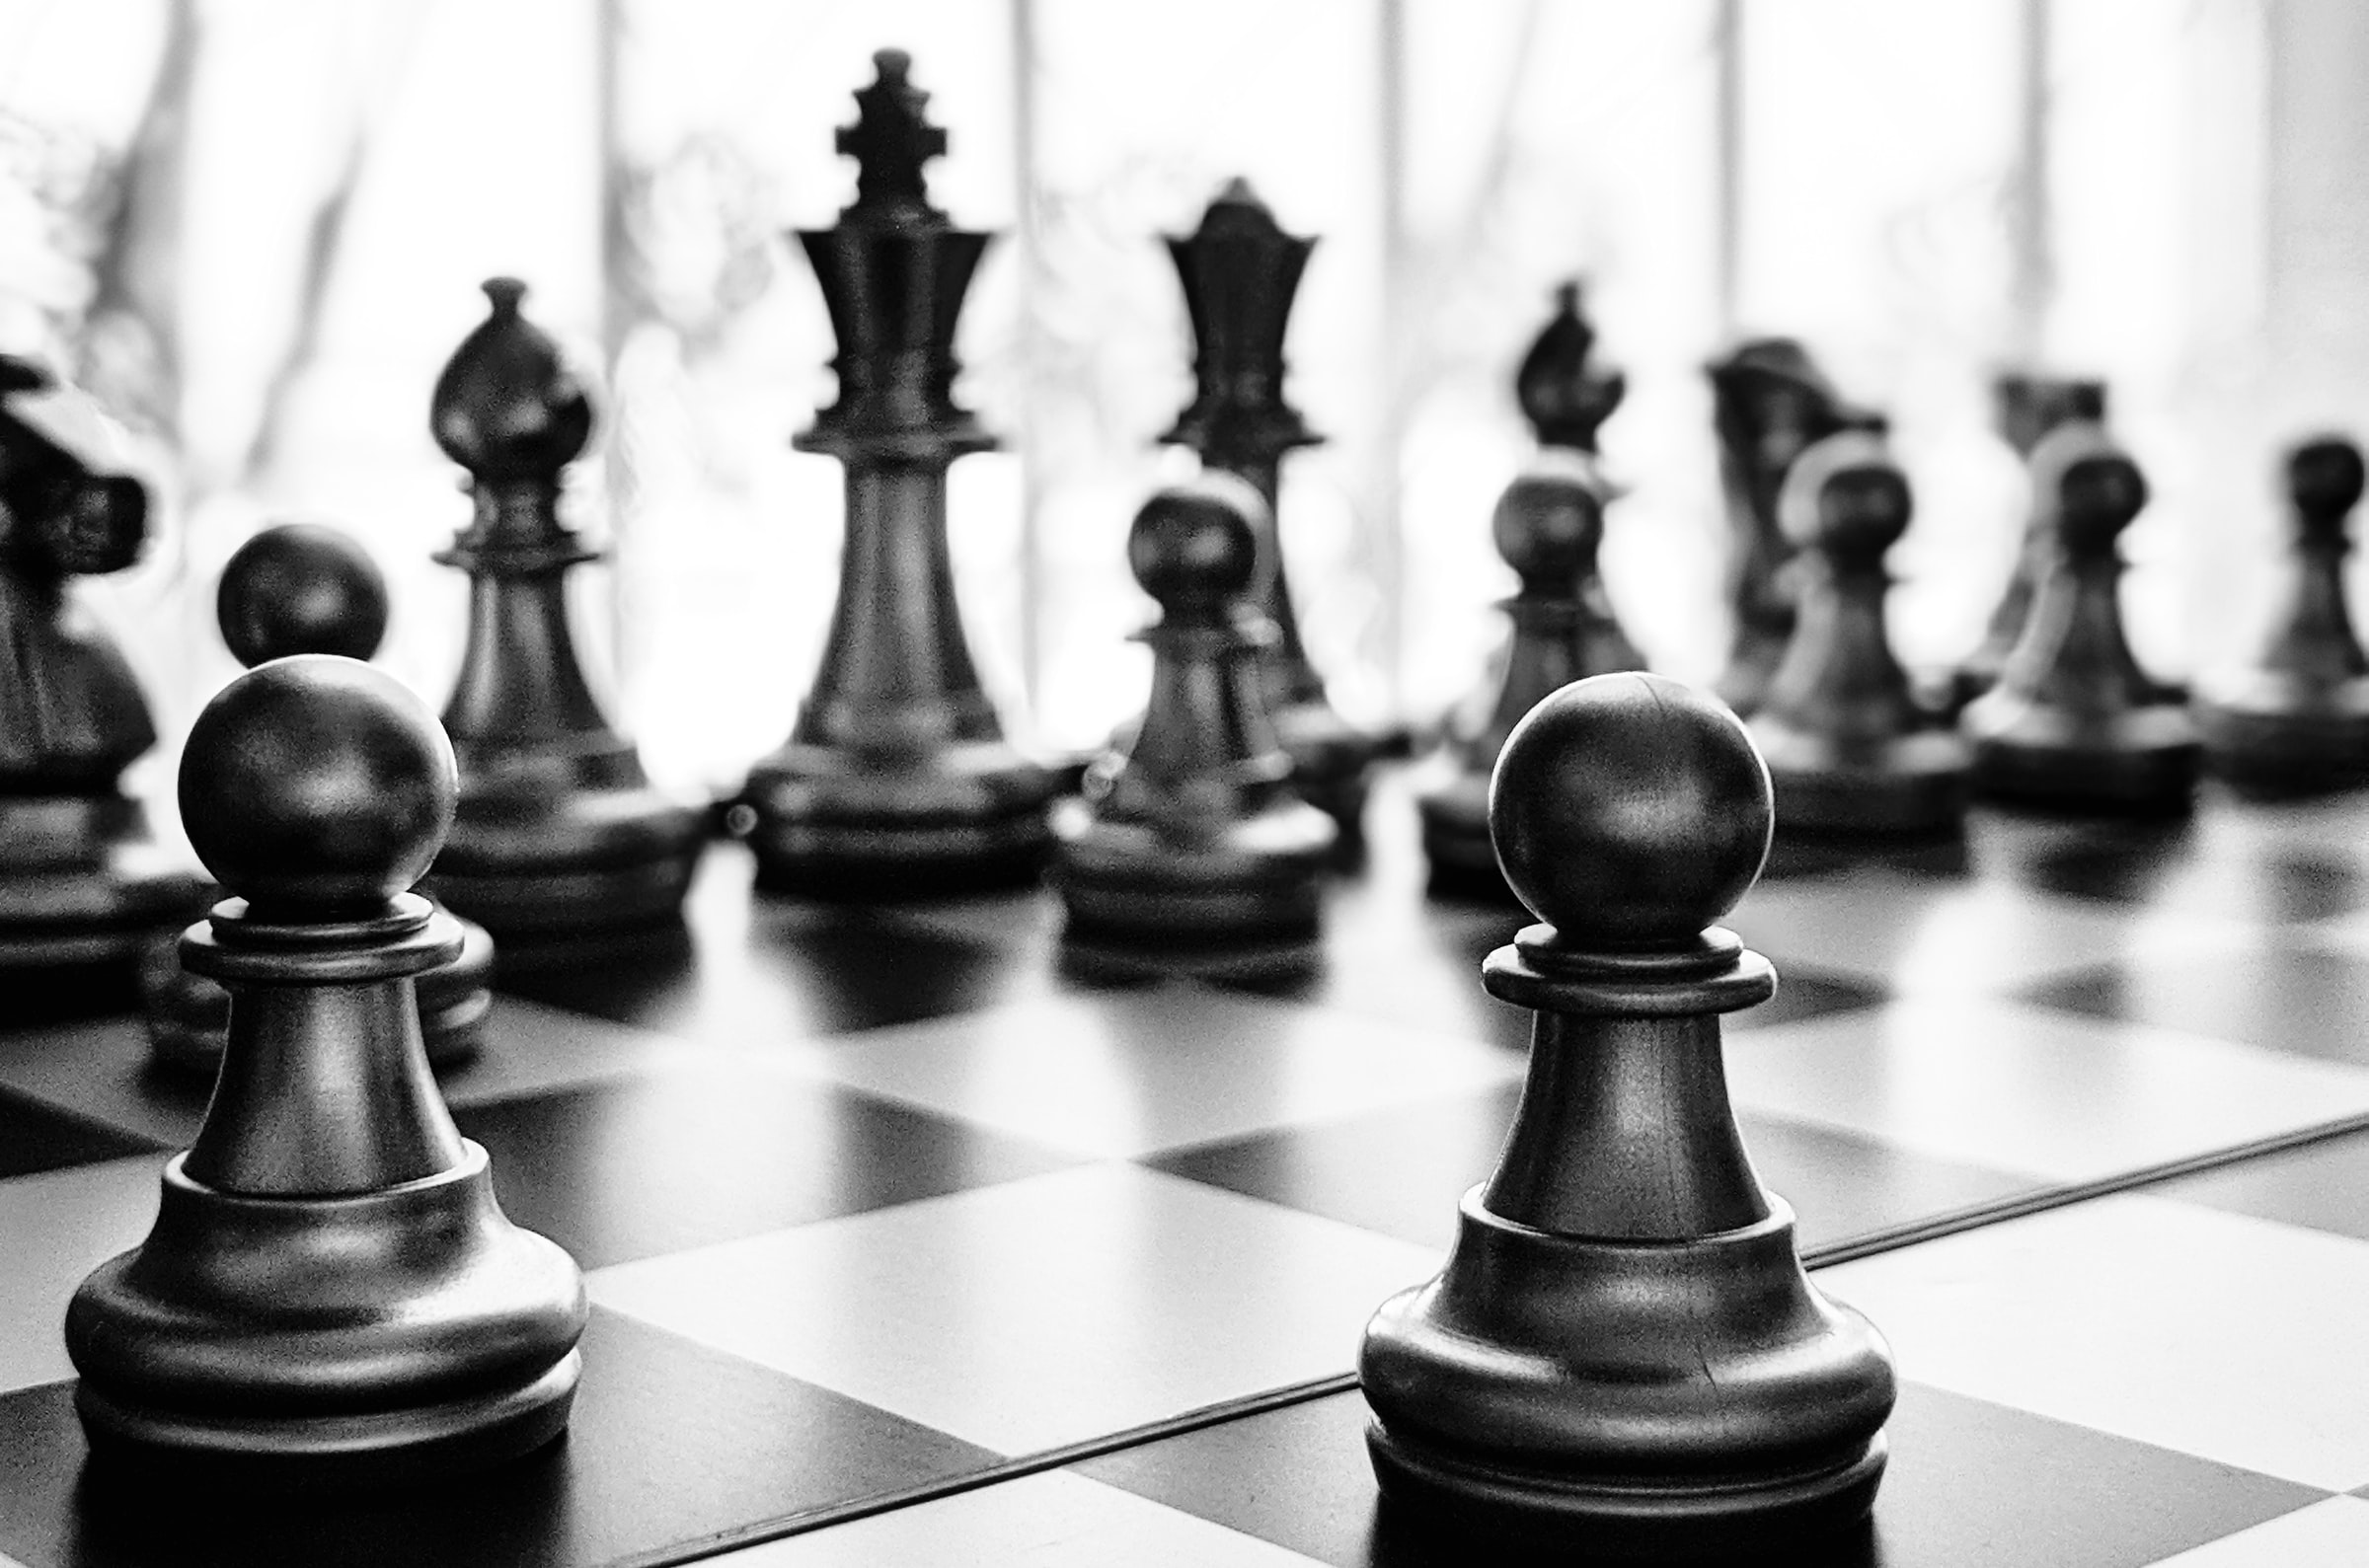 Black and white image of a chess game.